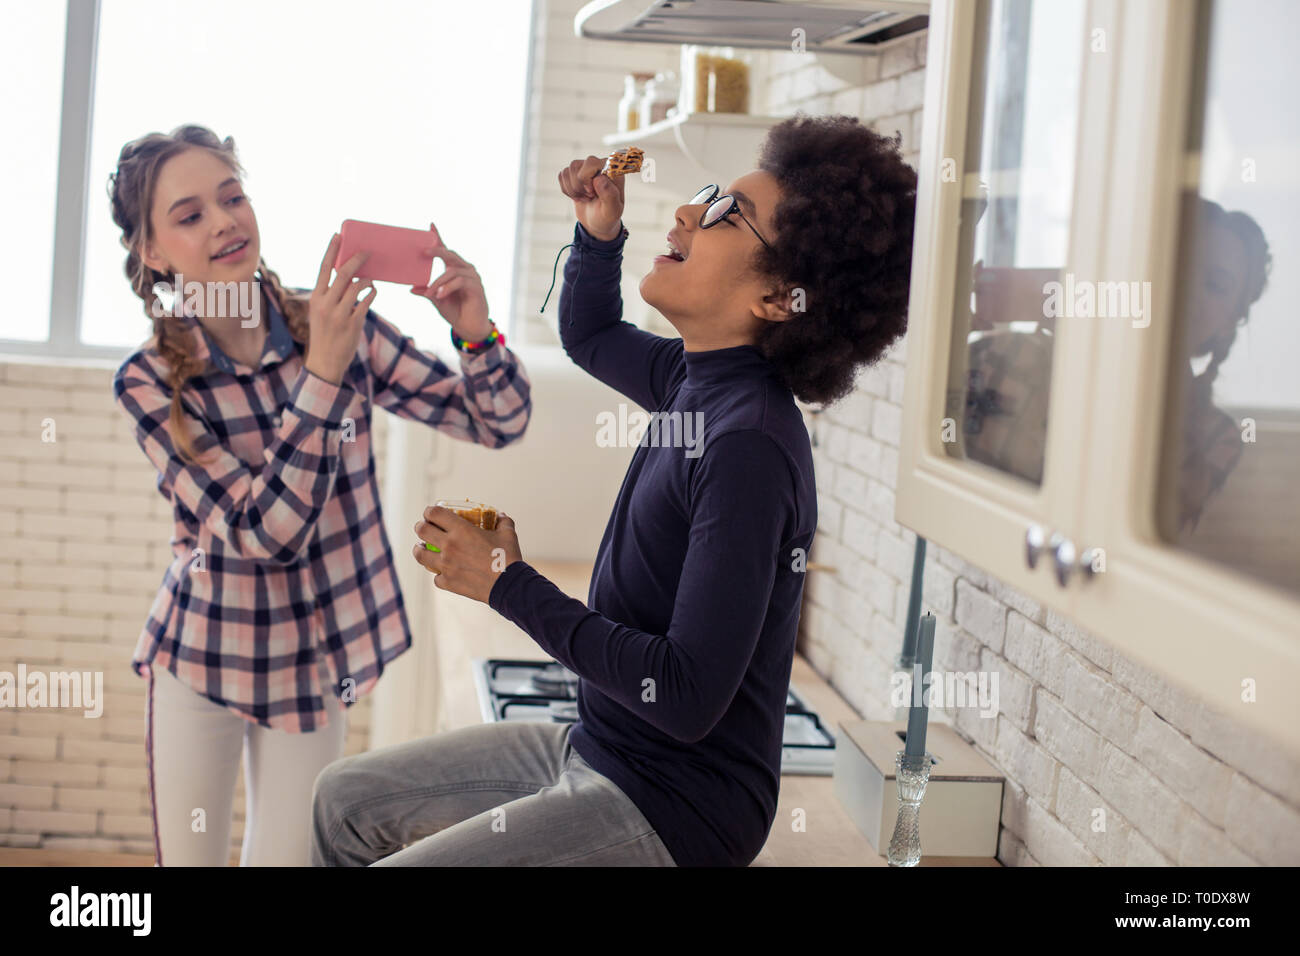 Joyful kids playing together with food in kitchen - Stock Image